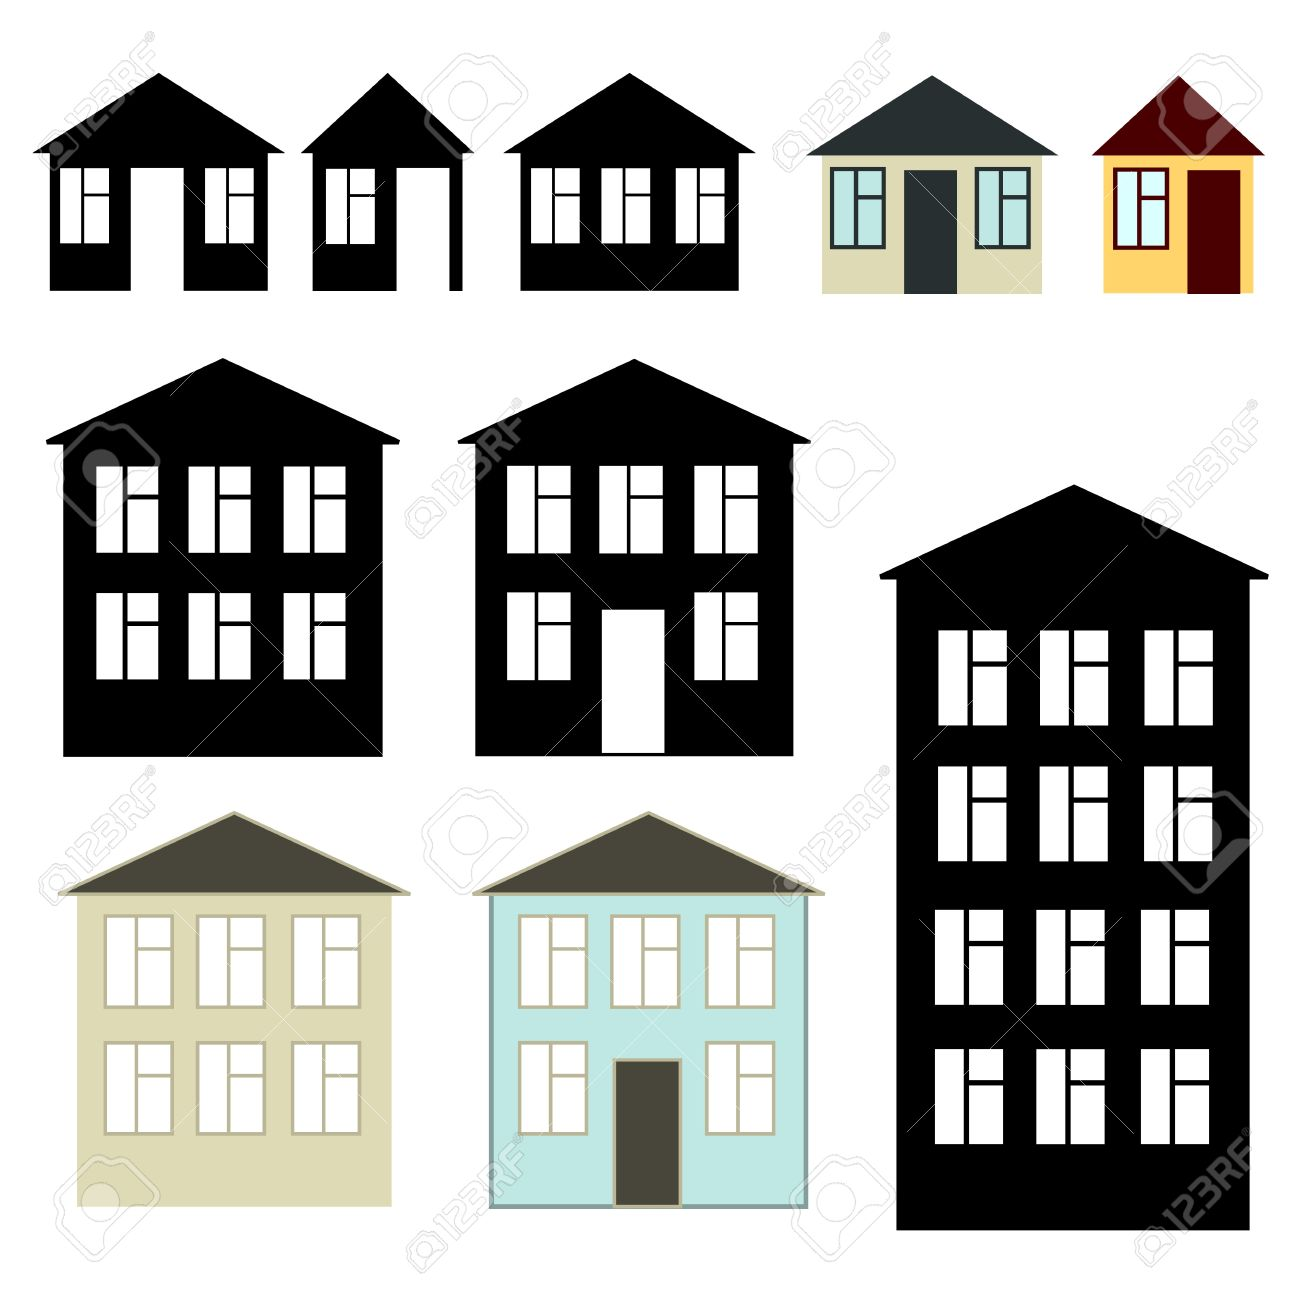 Apartment Building Illustration simple buildings set royalty free cliparts, vectors, and stock